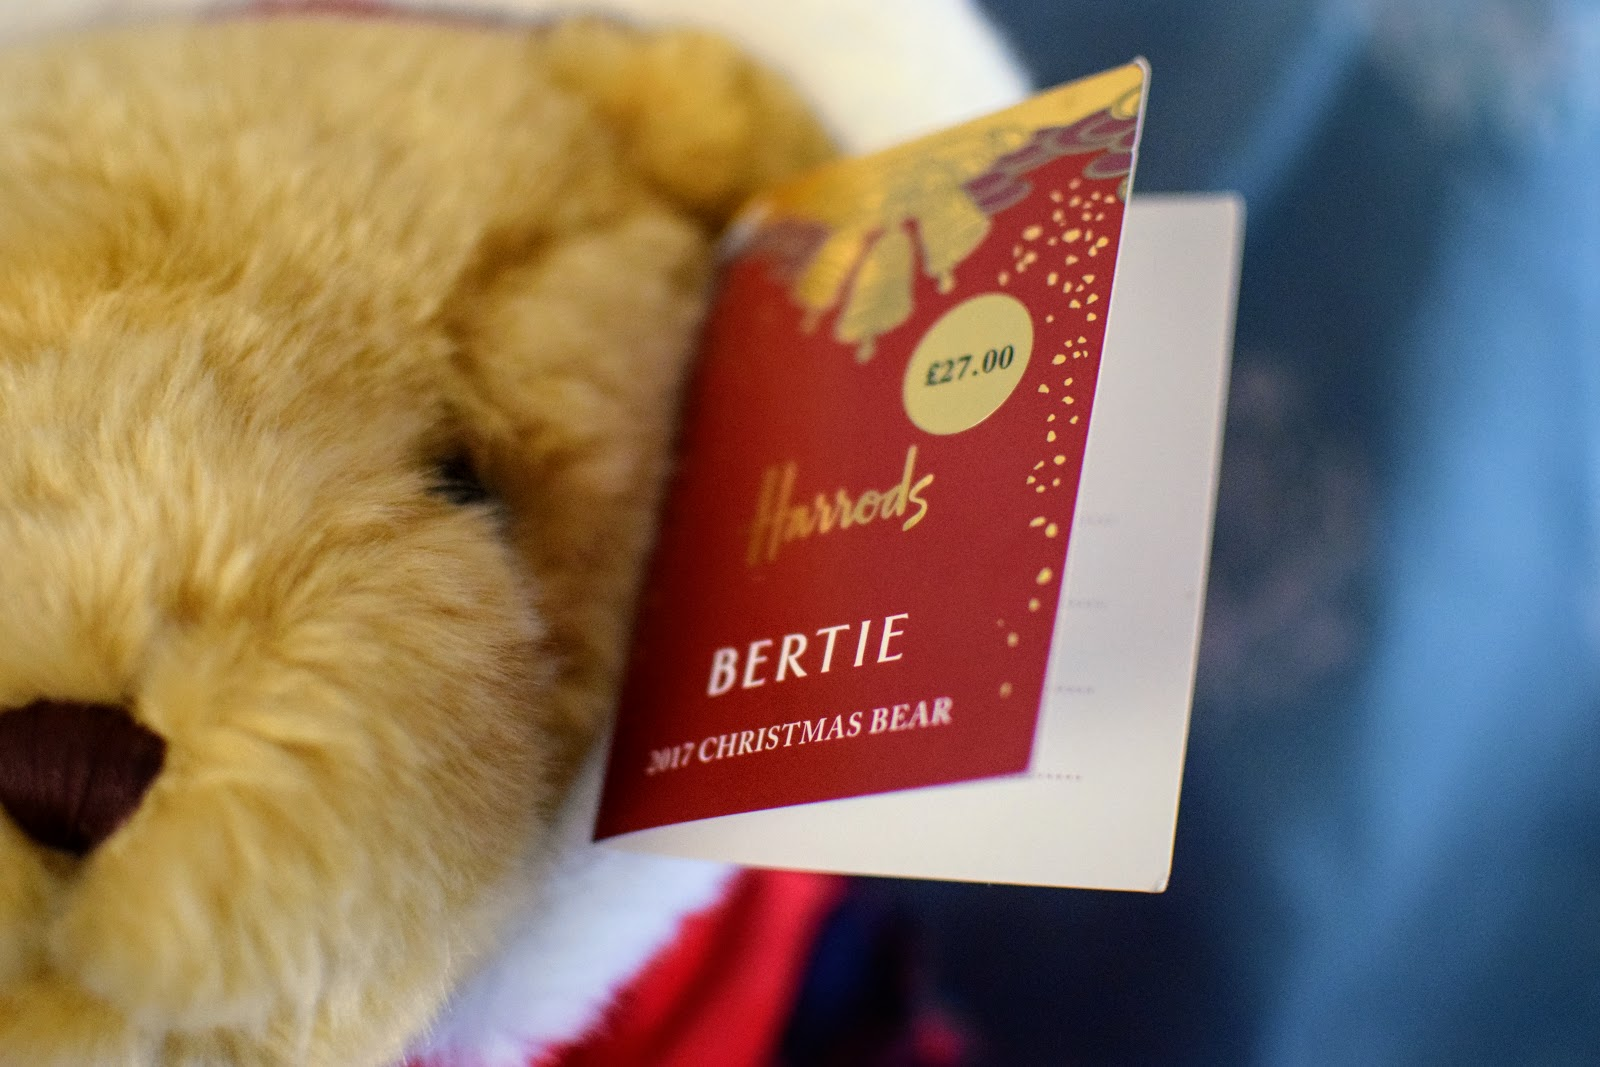 , Harrods Bertie Christmas Bear 2017 and Giving this Christmas